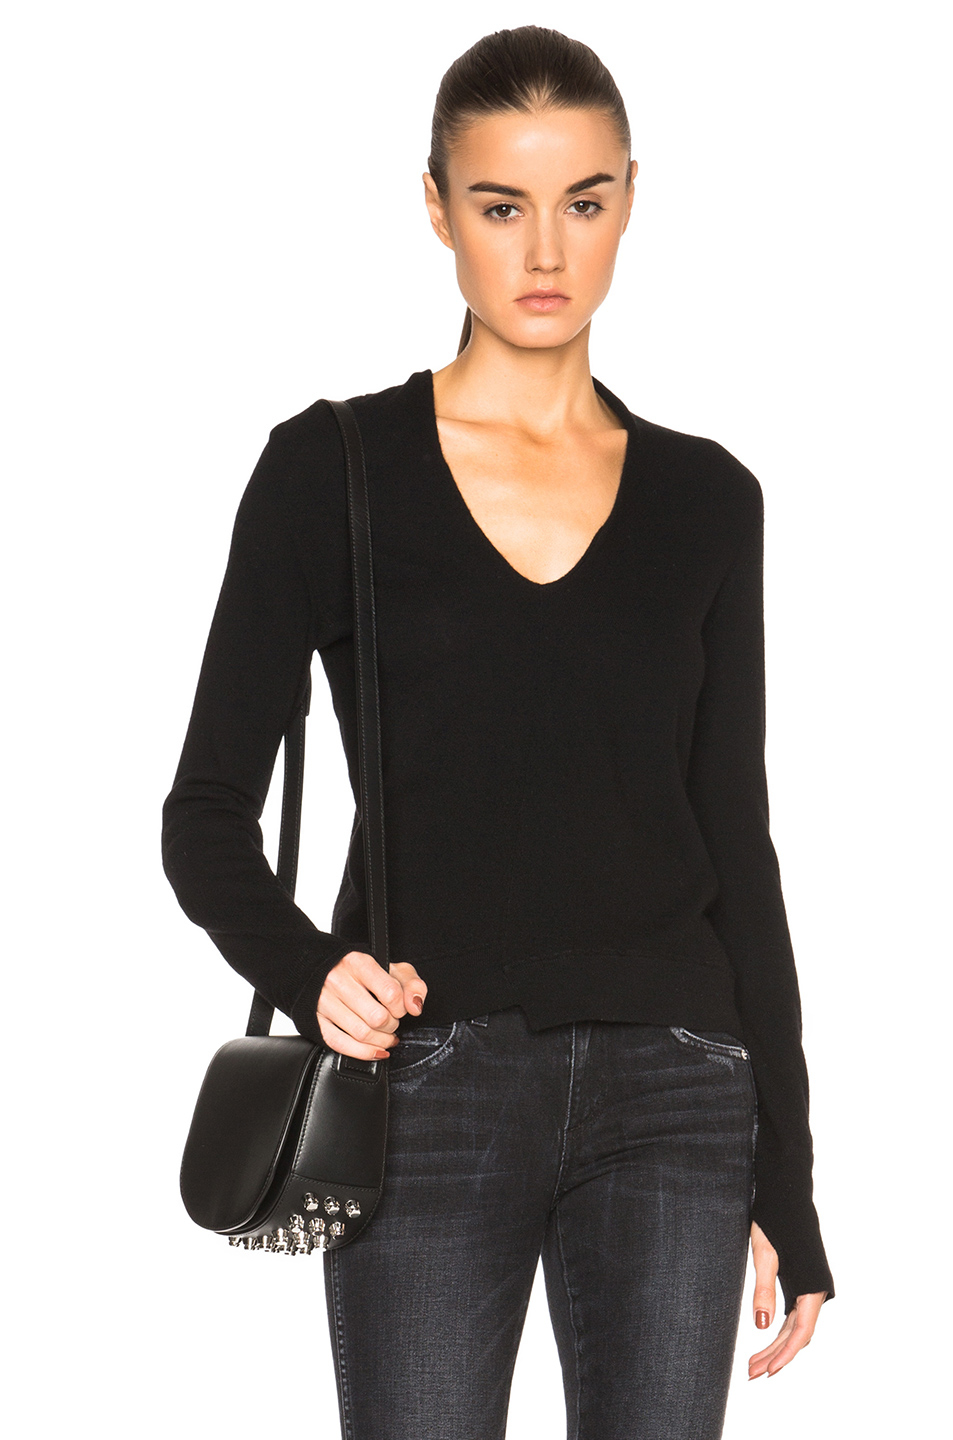 Inhabit Cashmere Thumbhole V-neck Sweater in Black | Lyst